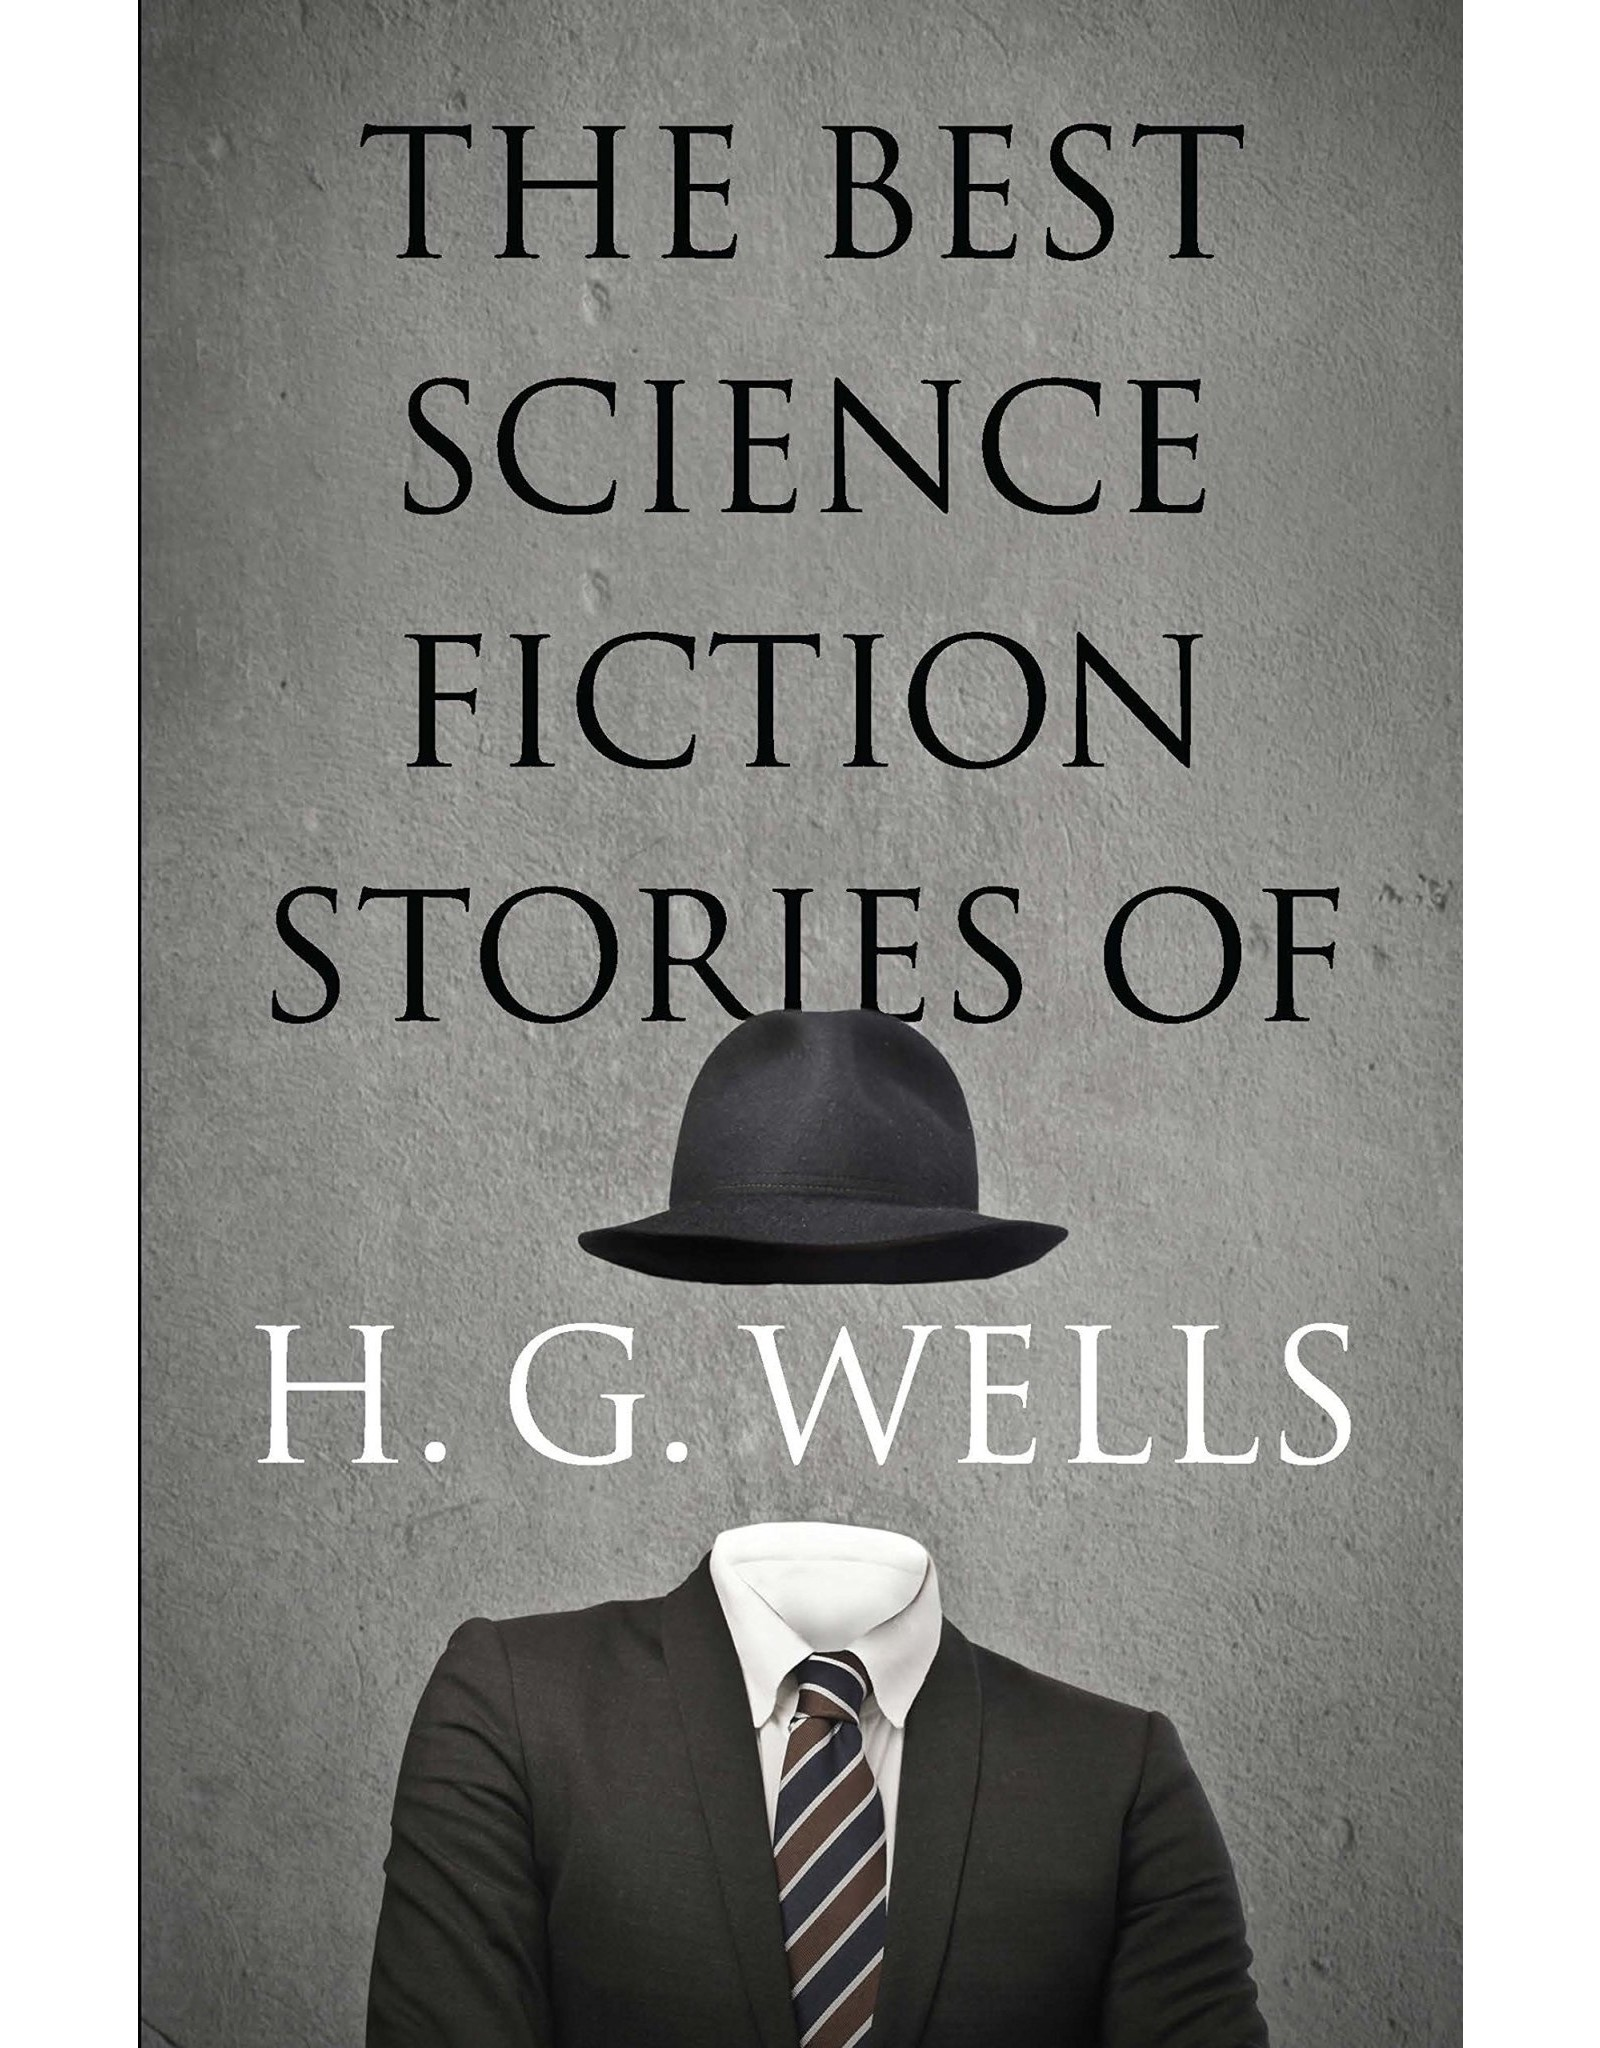 THE BEST SCIENCE FICTION STORIES OF H G WELLS